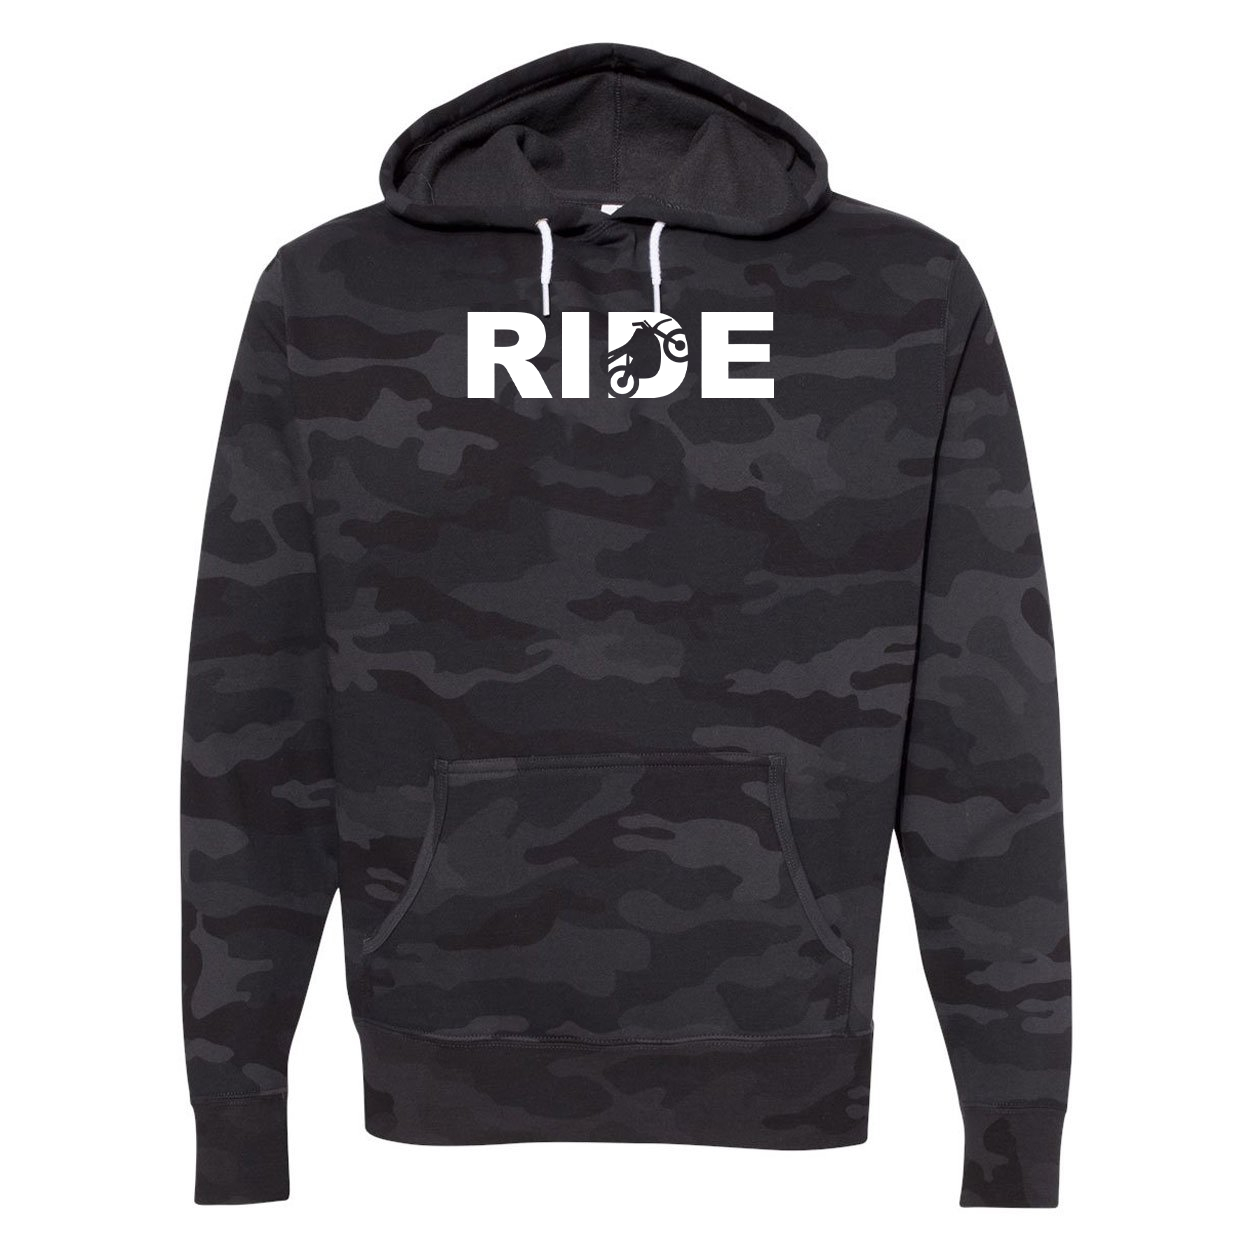 Ride Moto Logo Classic Unisex Hooded Sweatshirt Black Camo (White Logo)